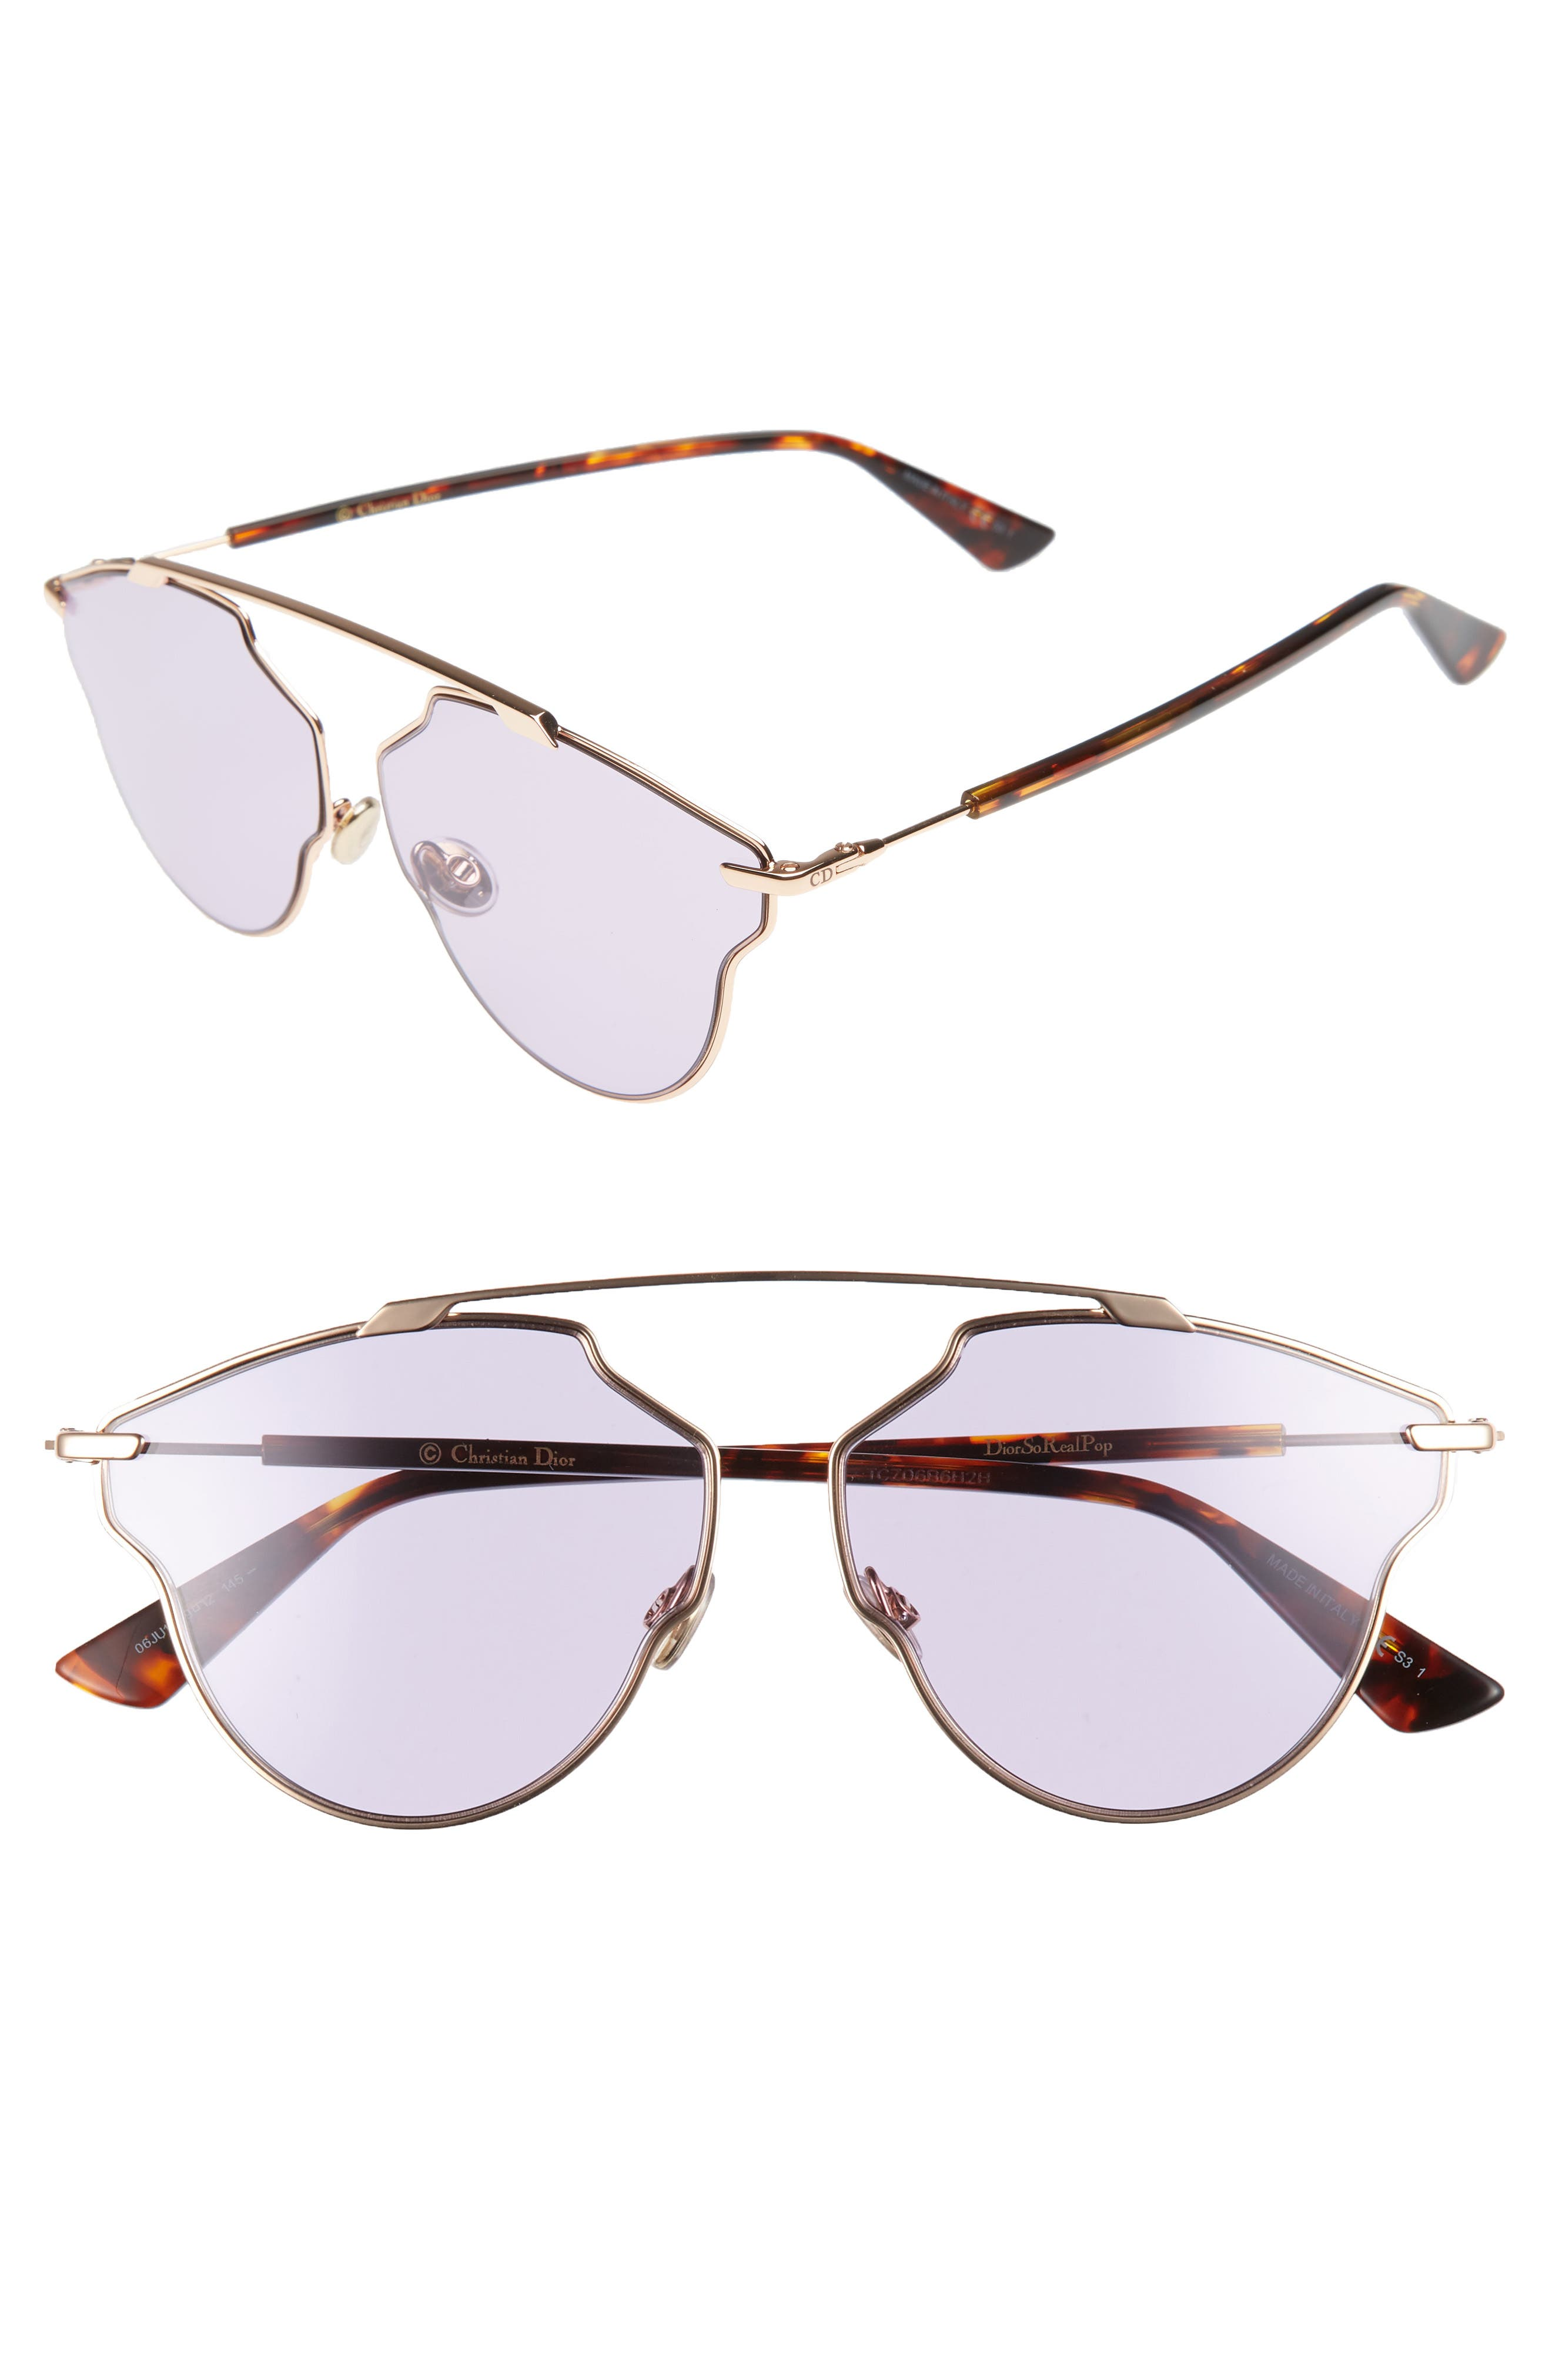 Main Image - Christian Dior So Real Pop 59mm Sunglasses